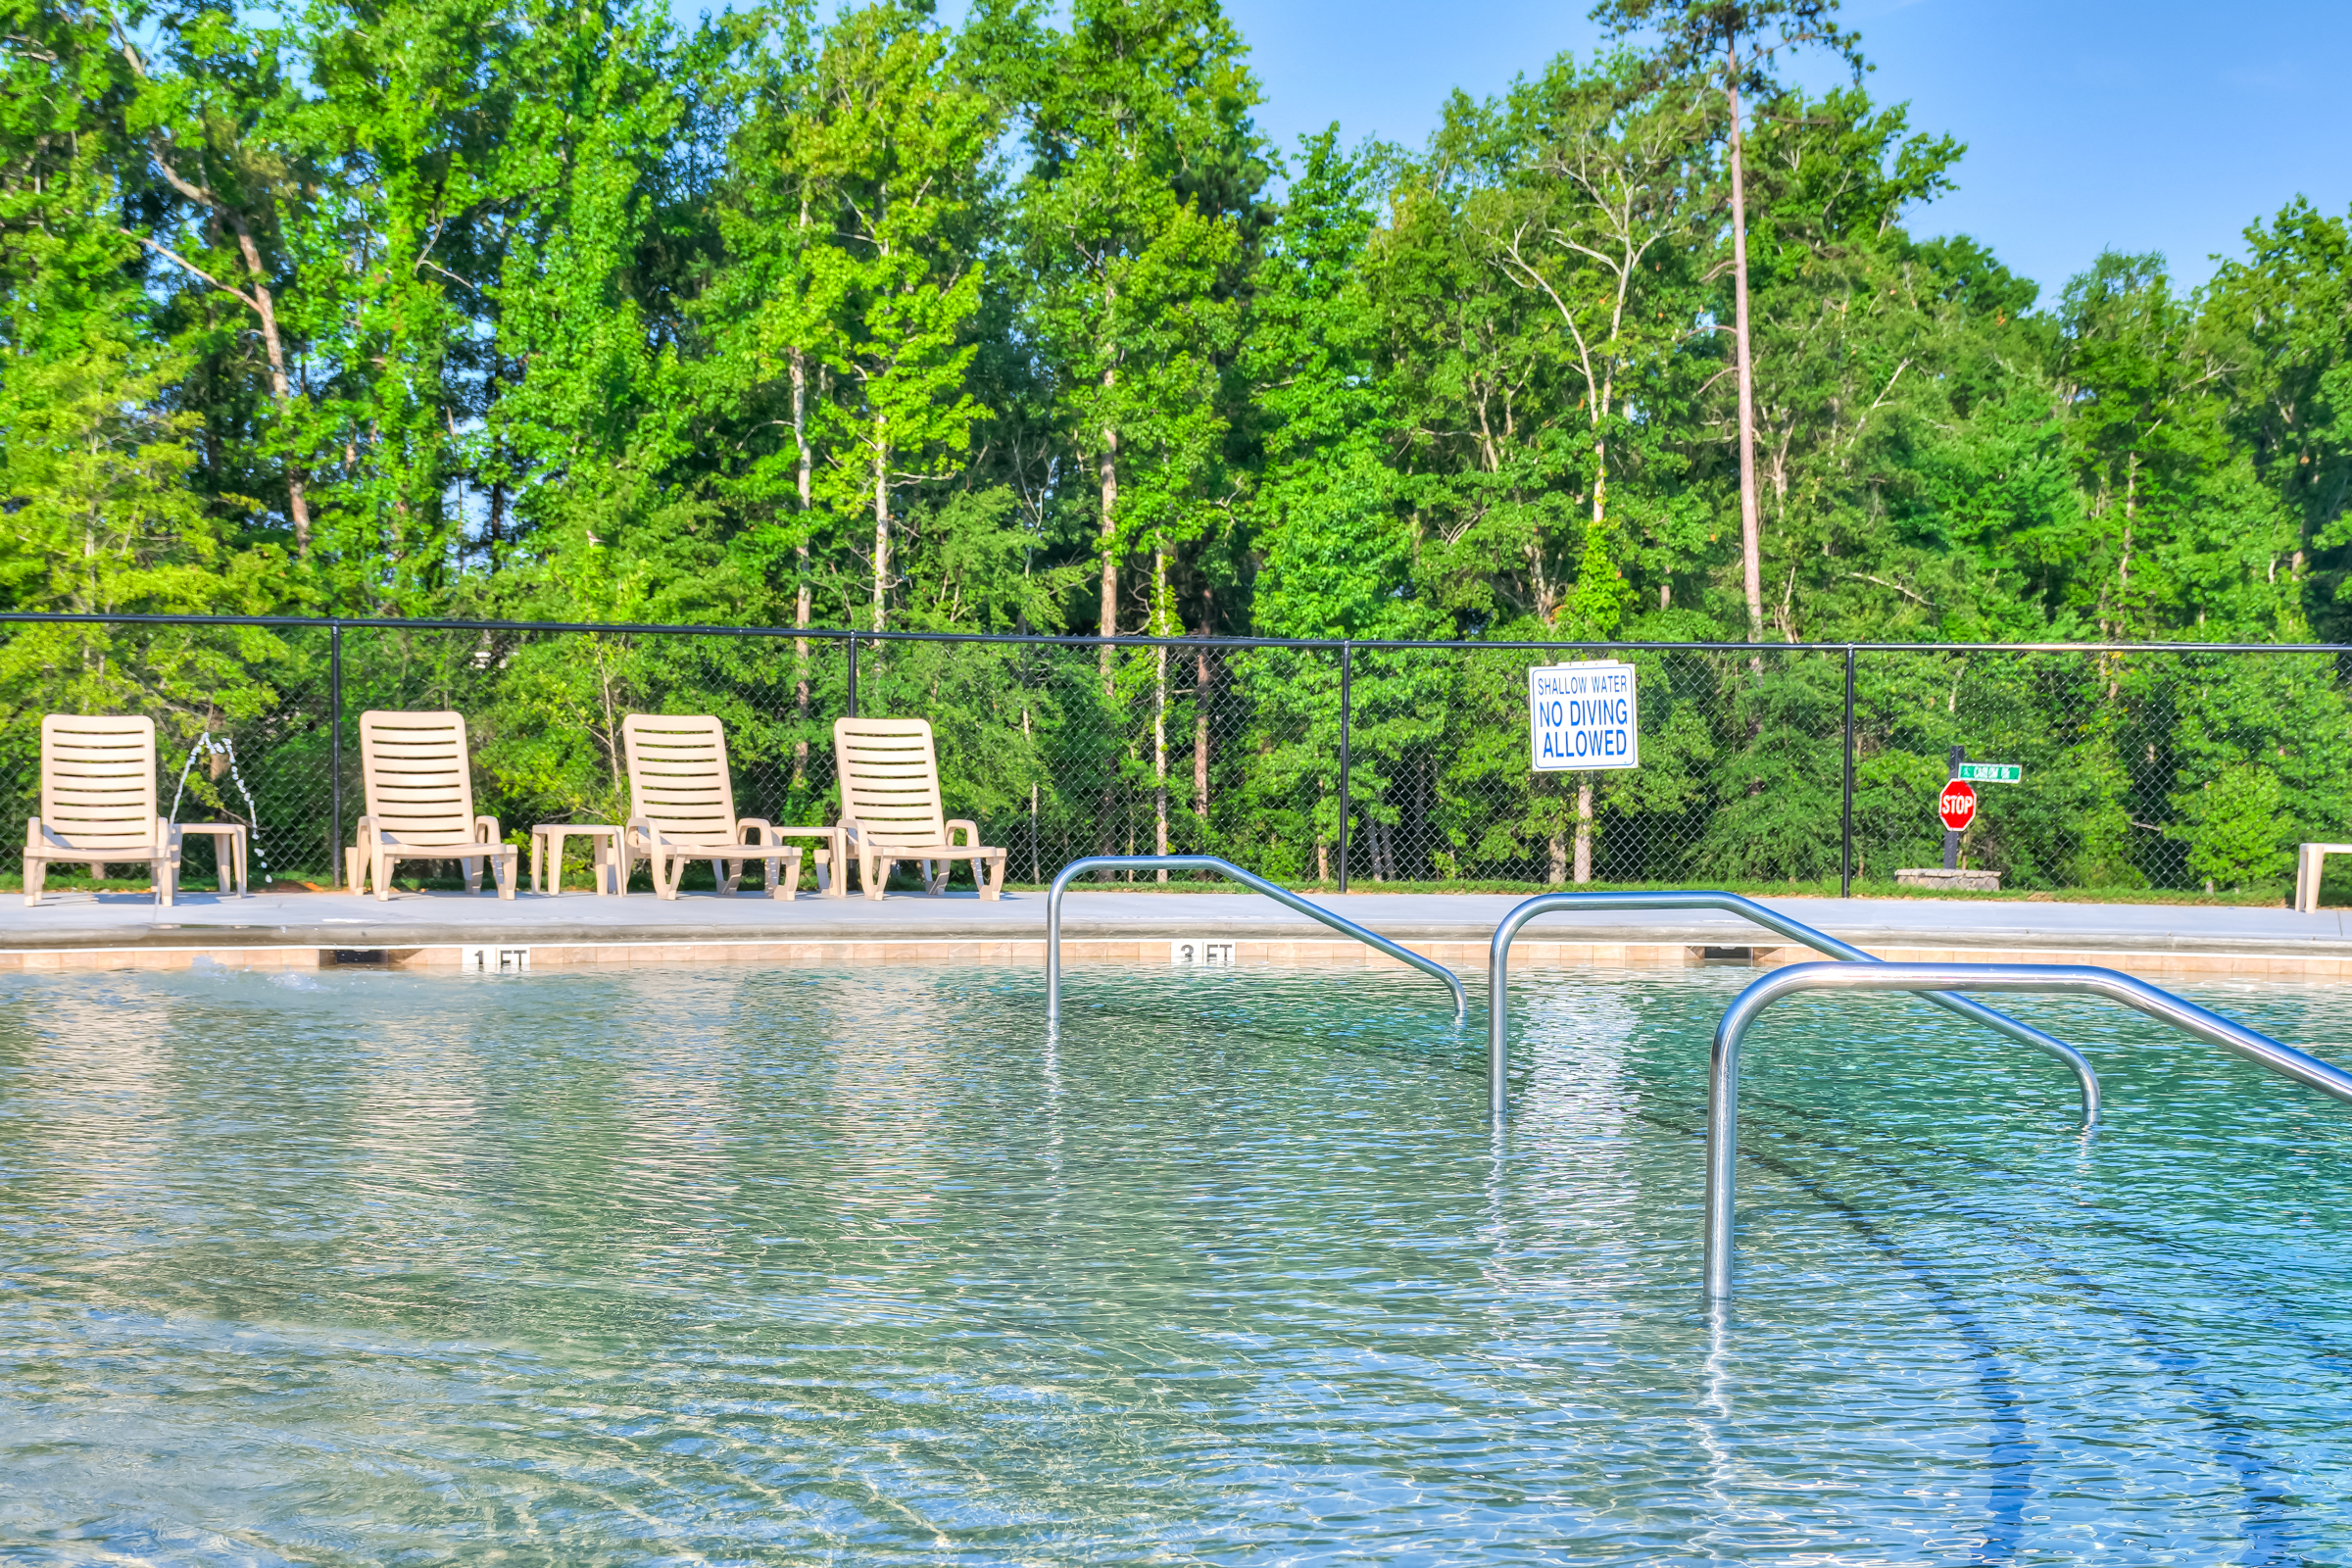 An image of the sun tanning area in the pool at Kelarie.